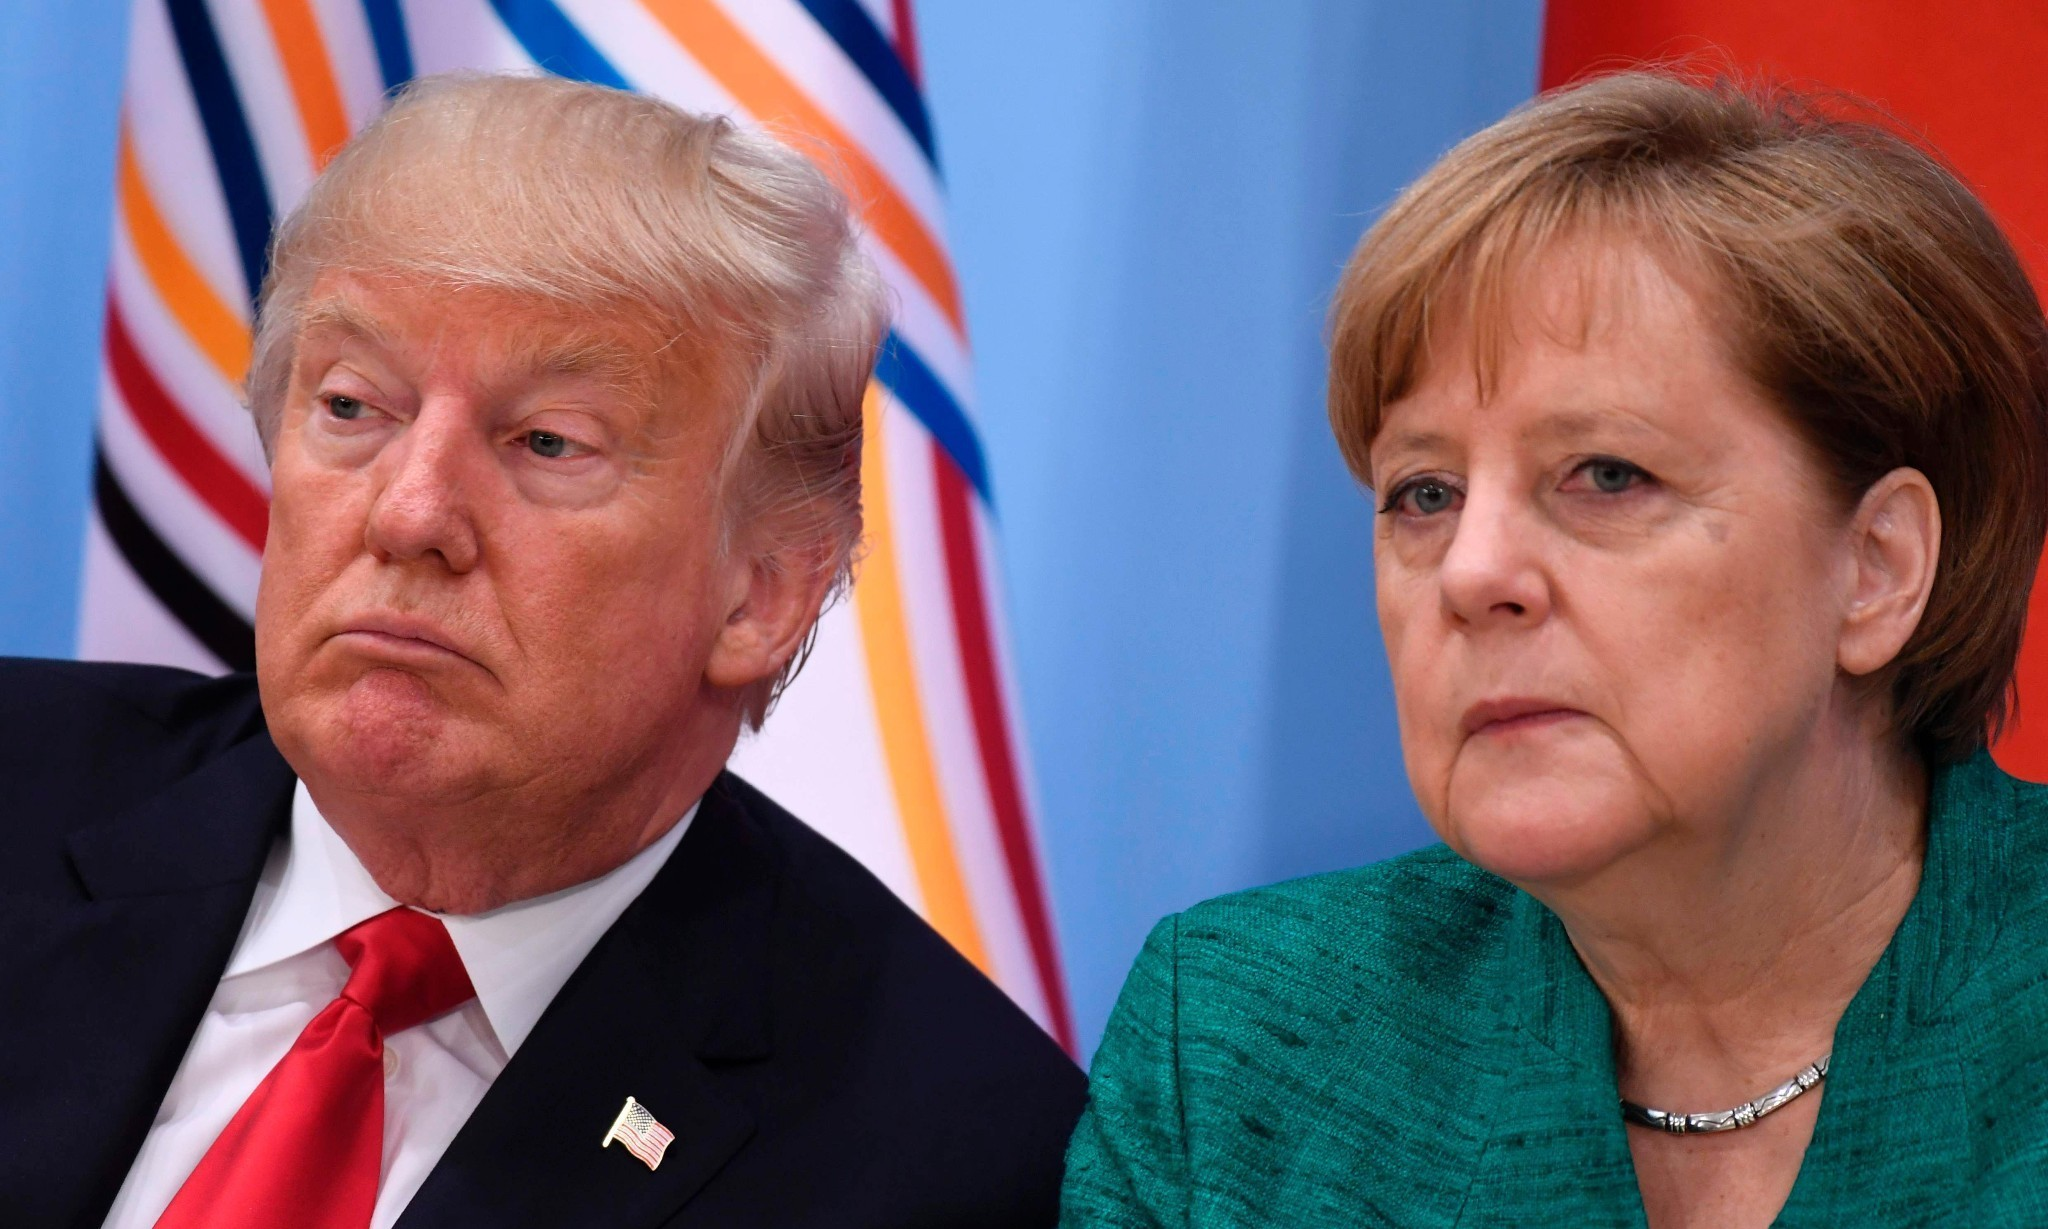 Trump left in cold over Paris climate agreement at end of G20 summit